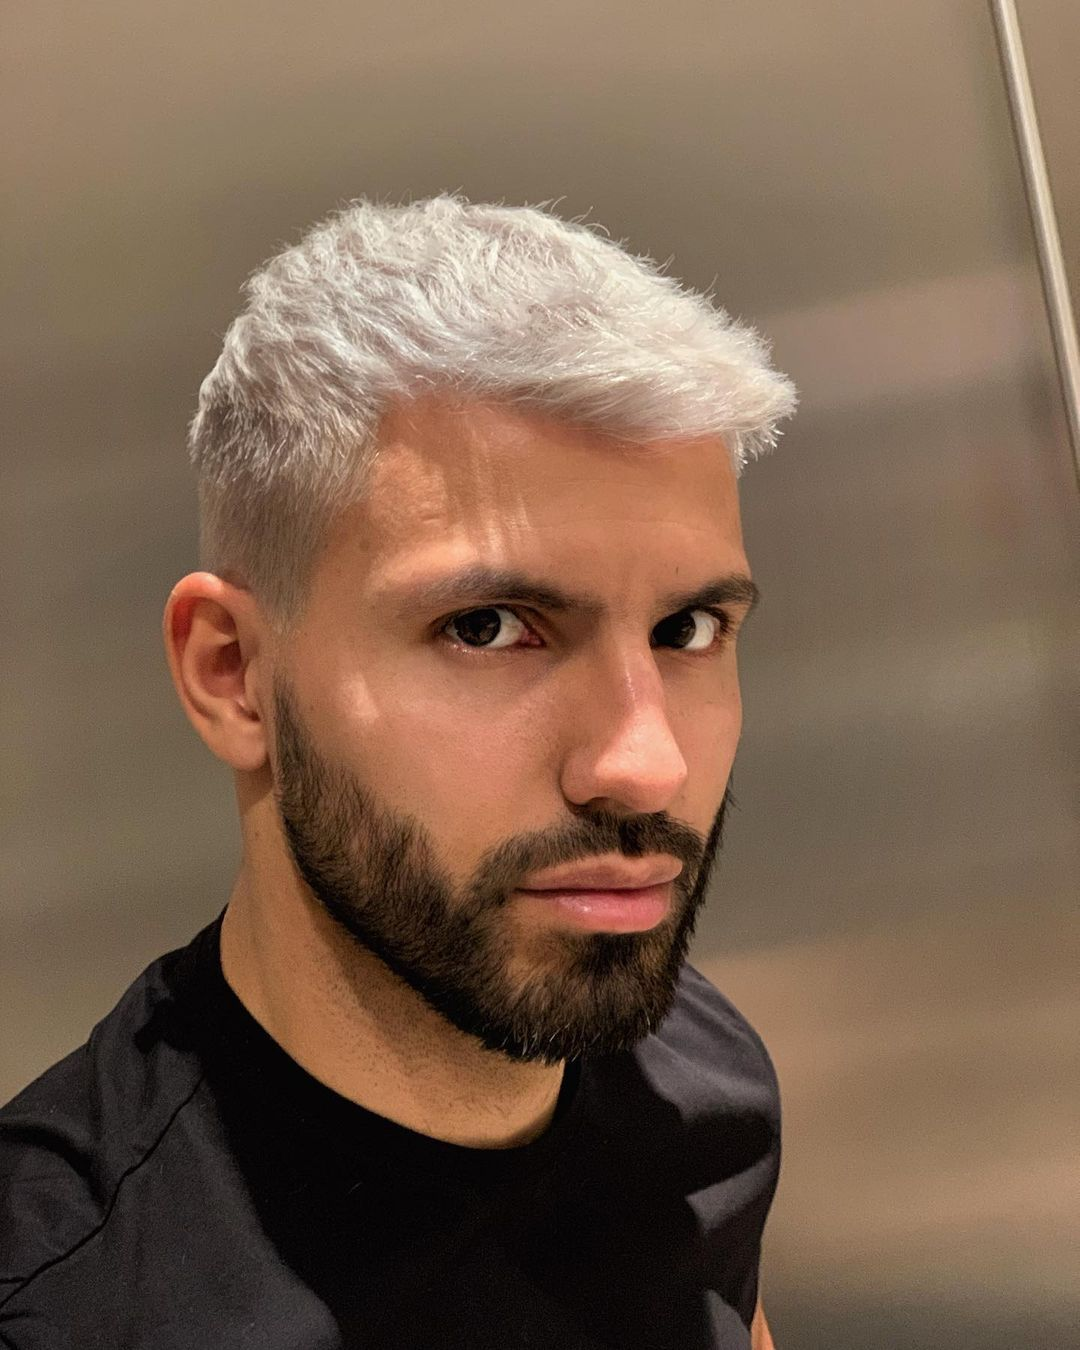 50 Short Hairstyles For Men Unique Neat Styles Mens Hairstyles Short Mens Hairstyles Short Hair Styles